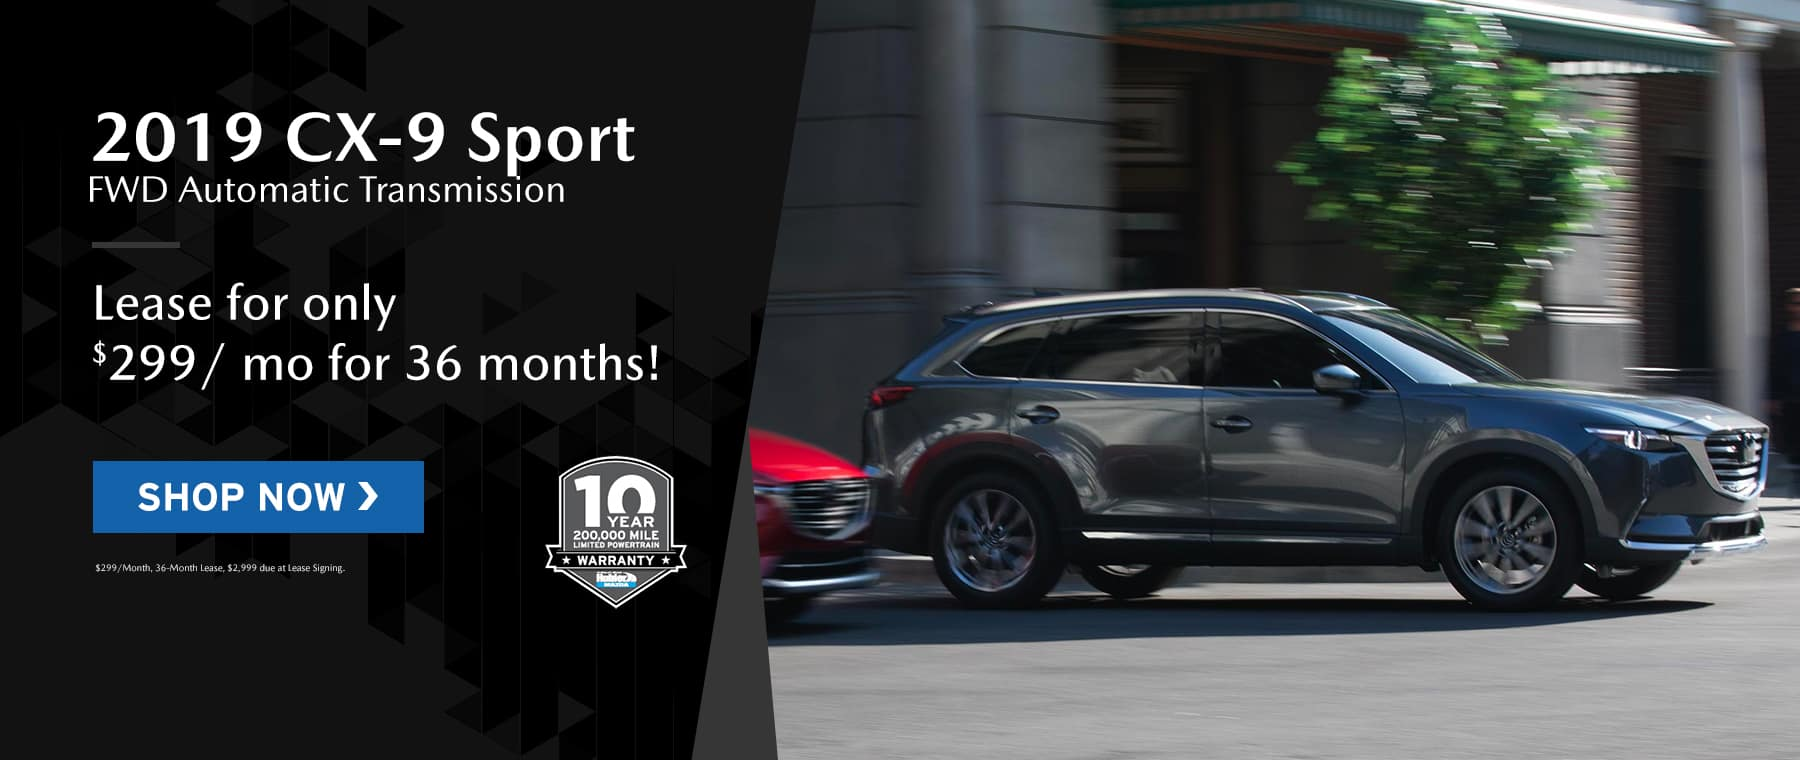 CX-9 offers at Hubler Mazda